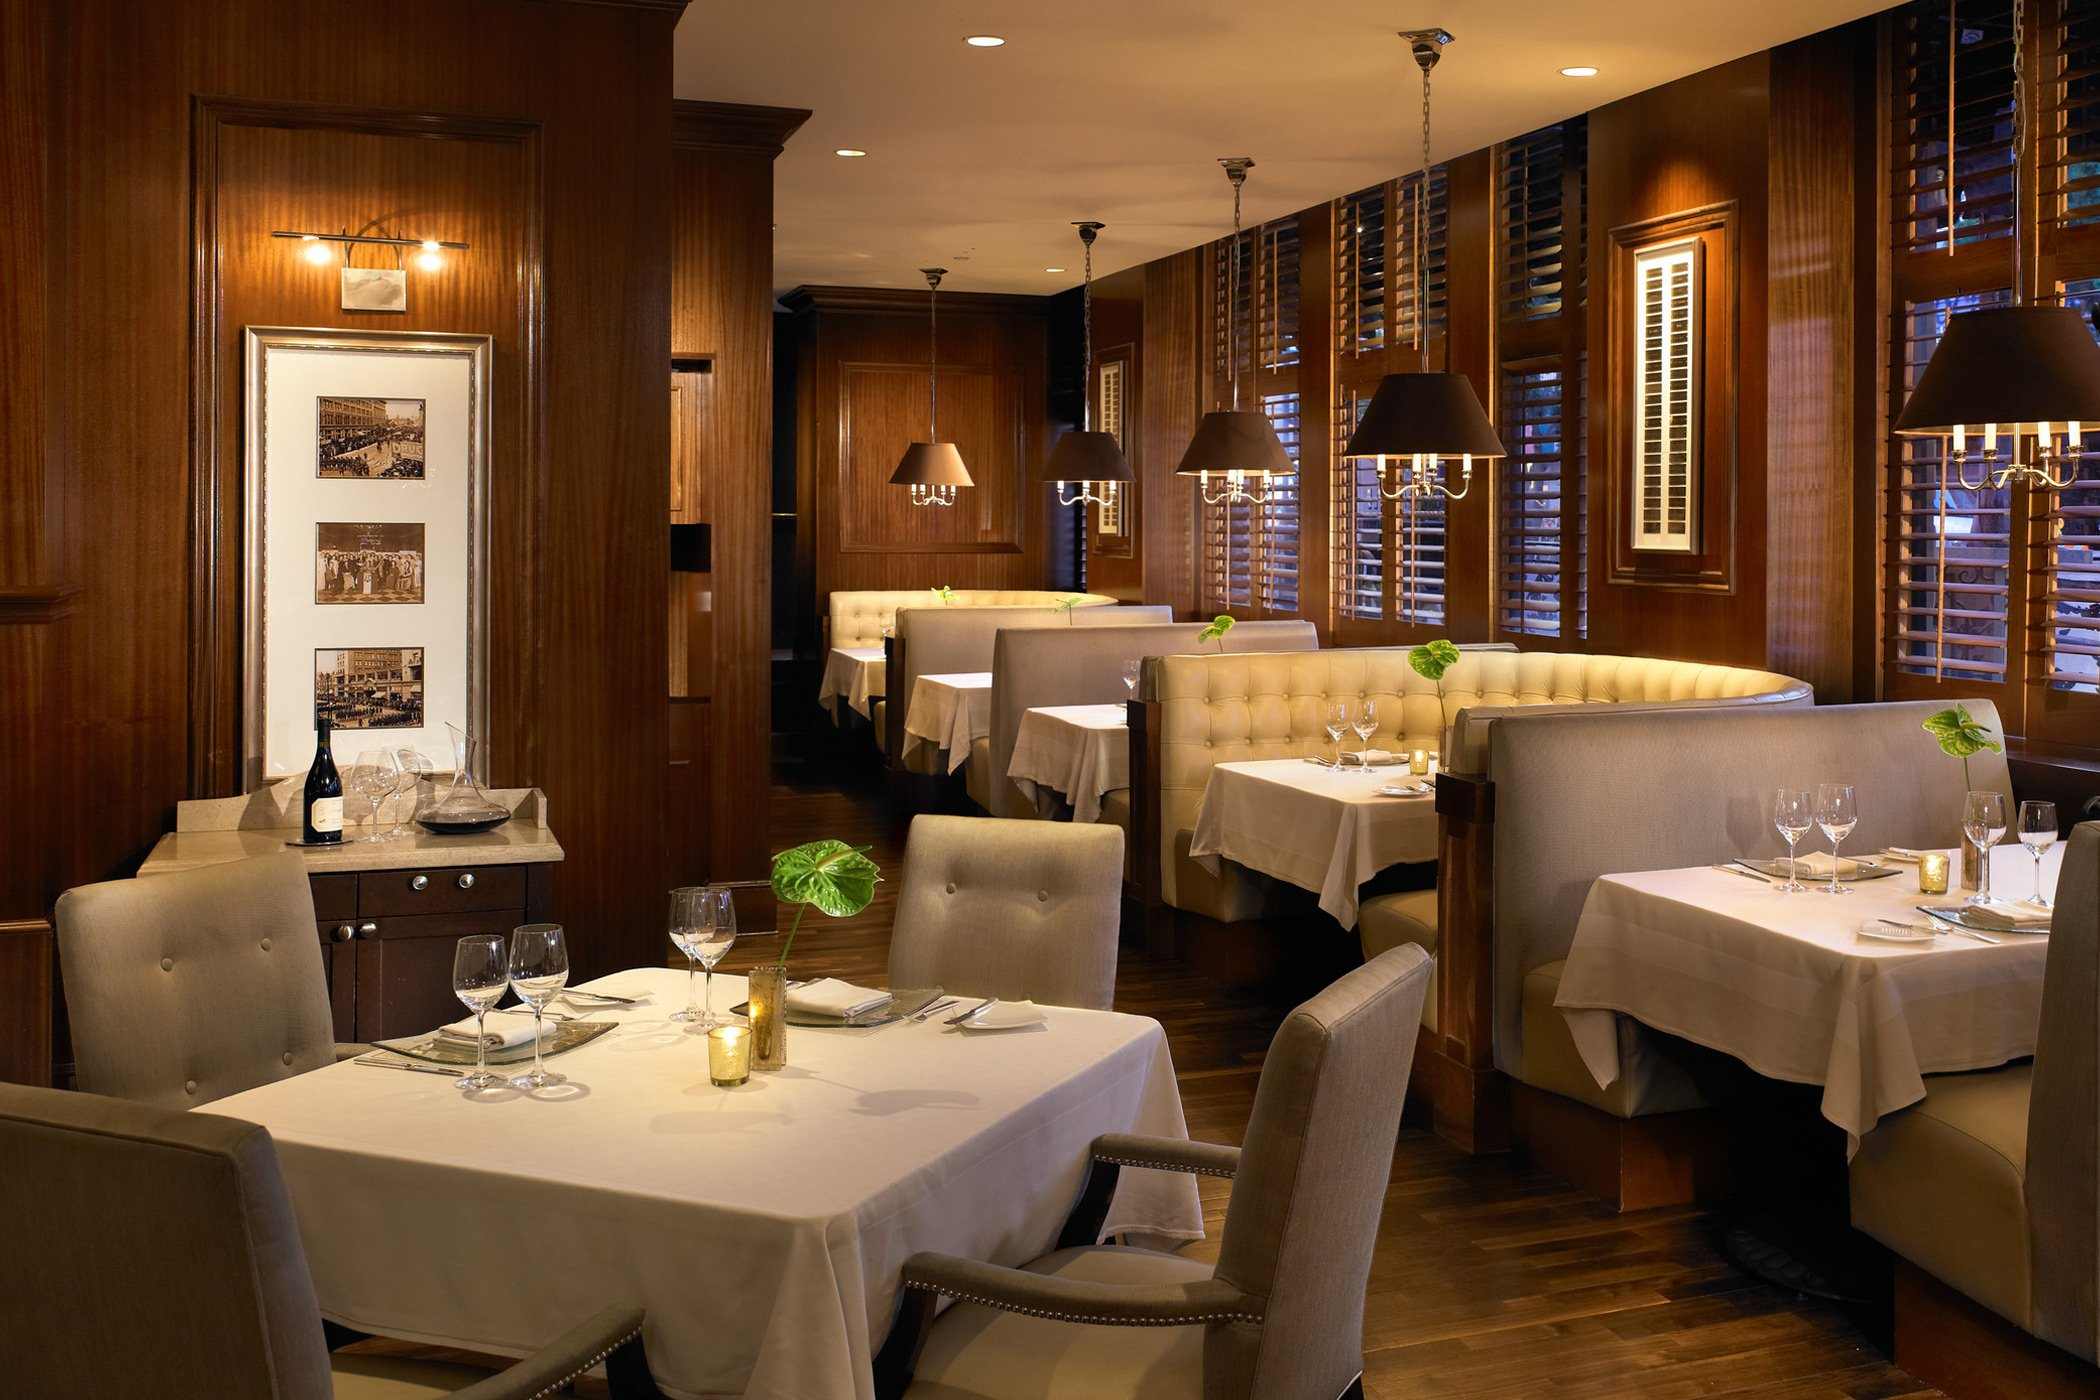 grant-grill-downtown-San-Diego-restaurant-interior-01